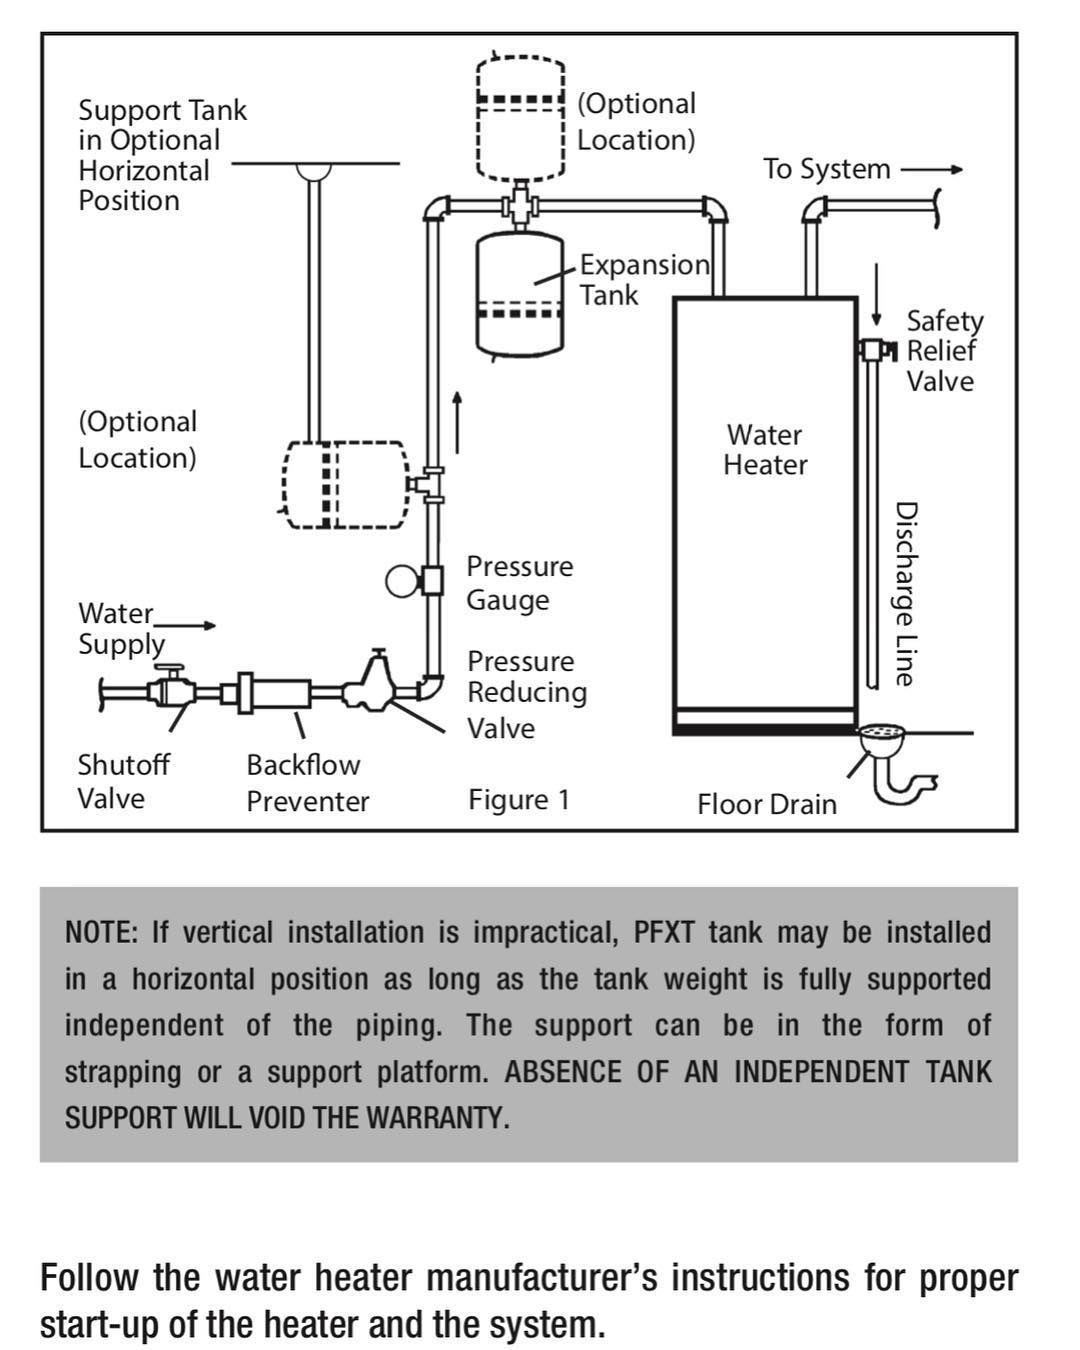 Georgetheplumber Proflo Thermo Expansion Tank Can Be Mounted Any Direction This Will Be My Preferred Tank From Now On Pl Supply Lines The Expanse Relief Valve